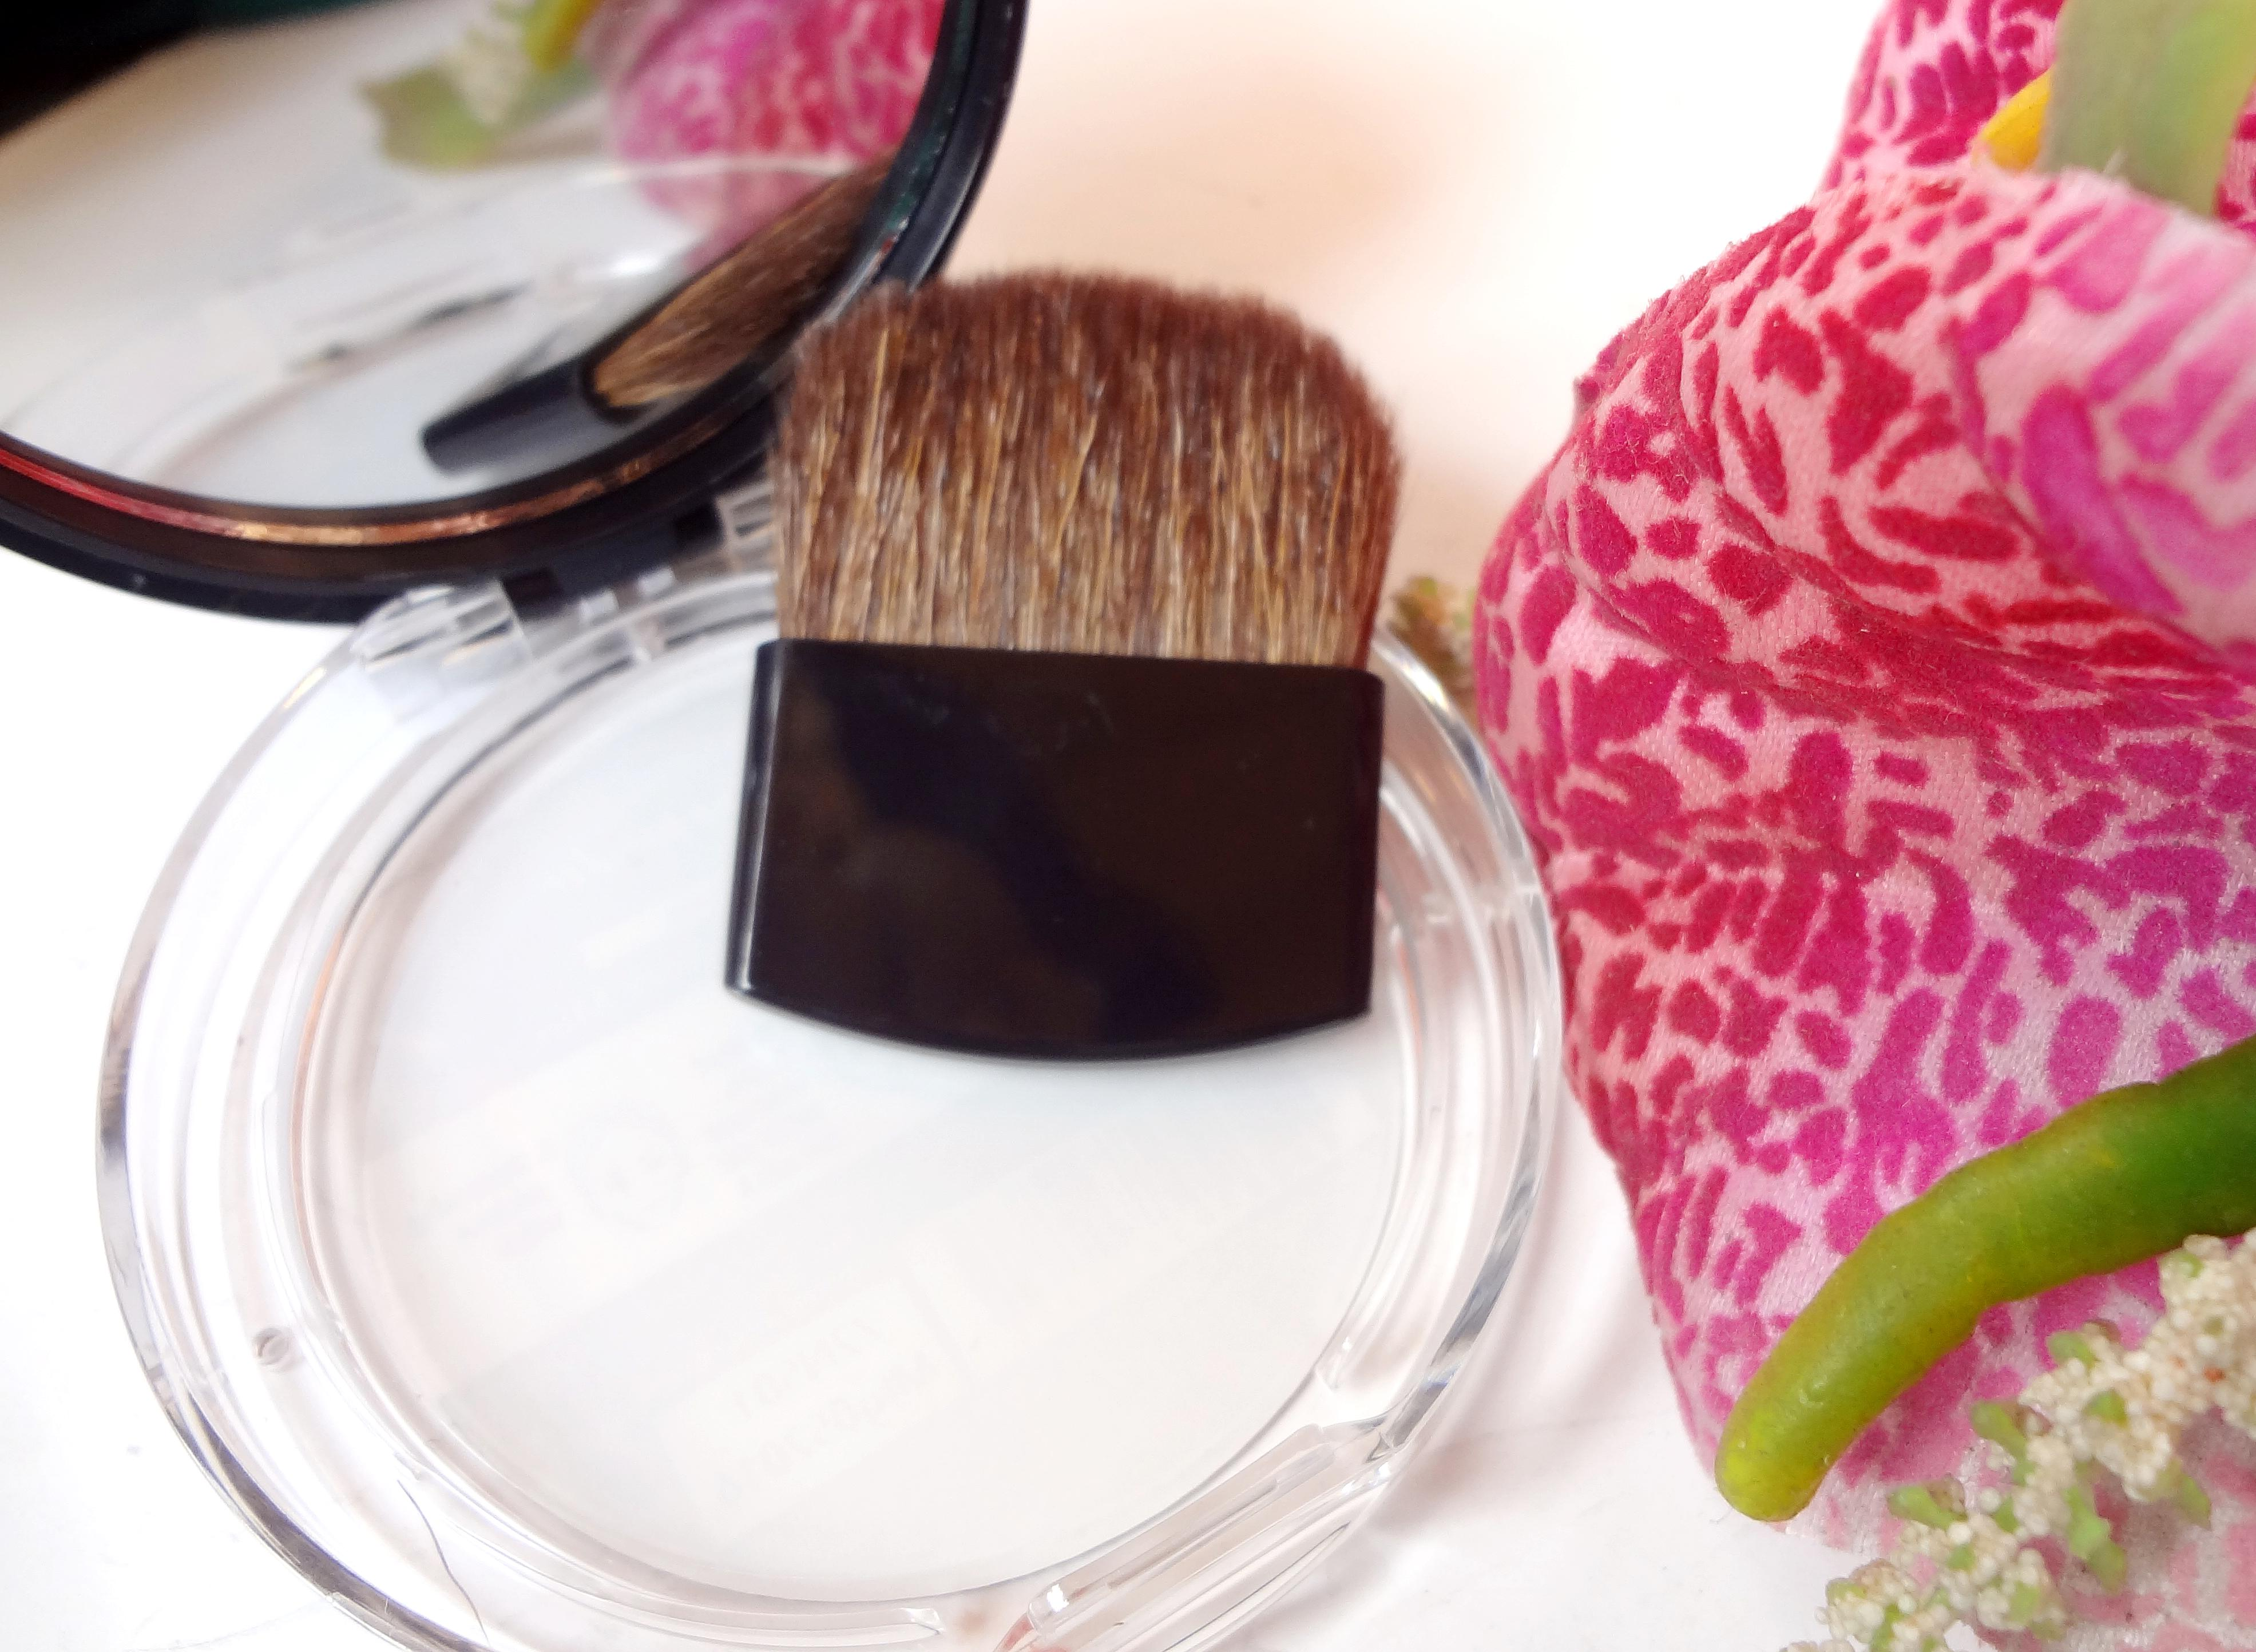 Maybelline V Face Duo Powder Swatches And Review Peachesandblush Contouring 5